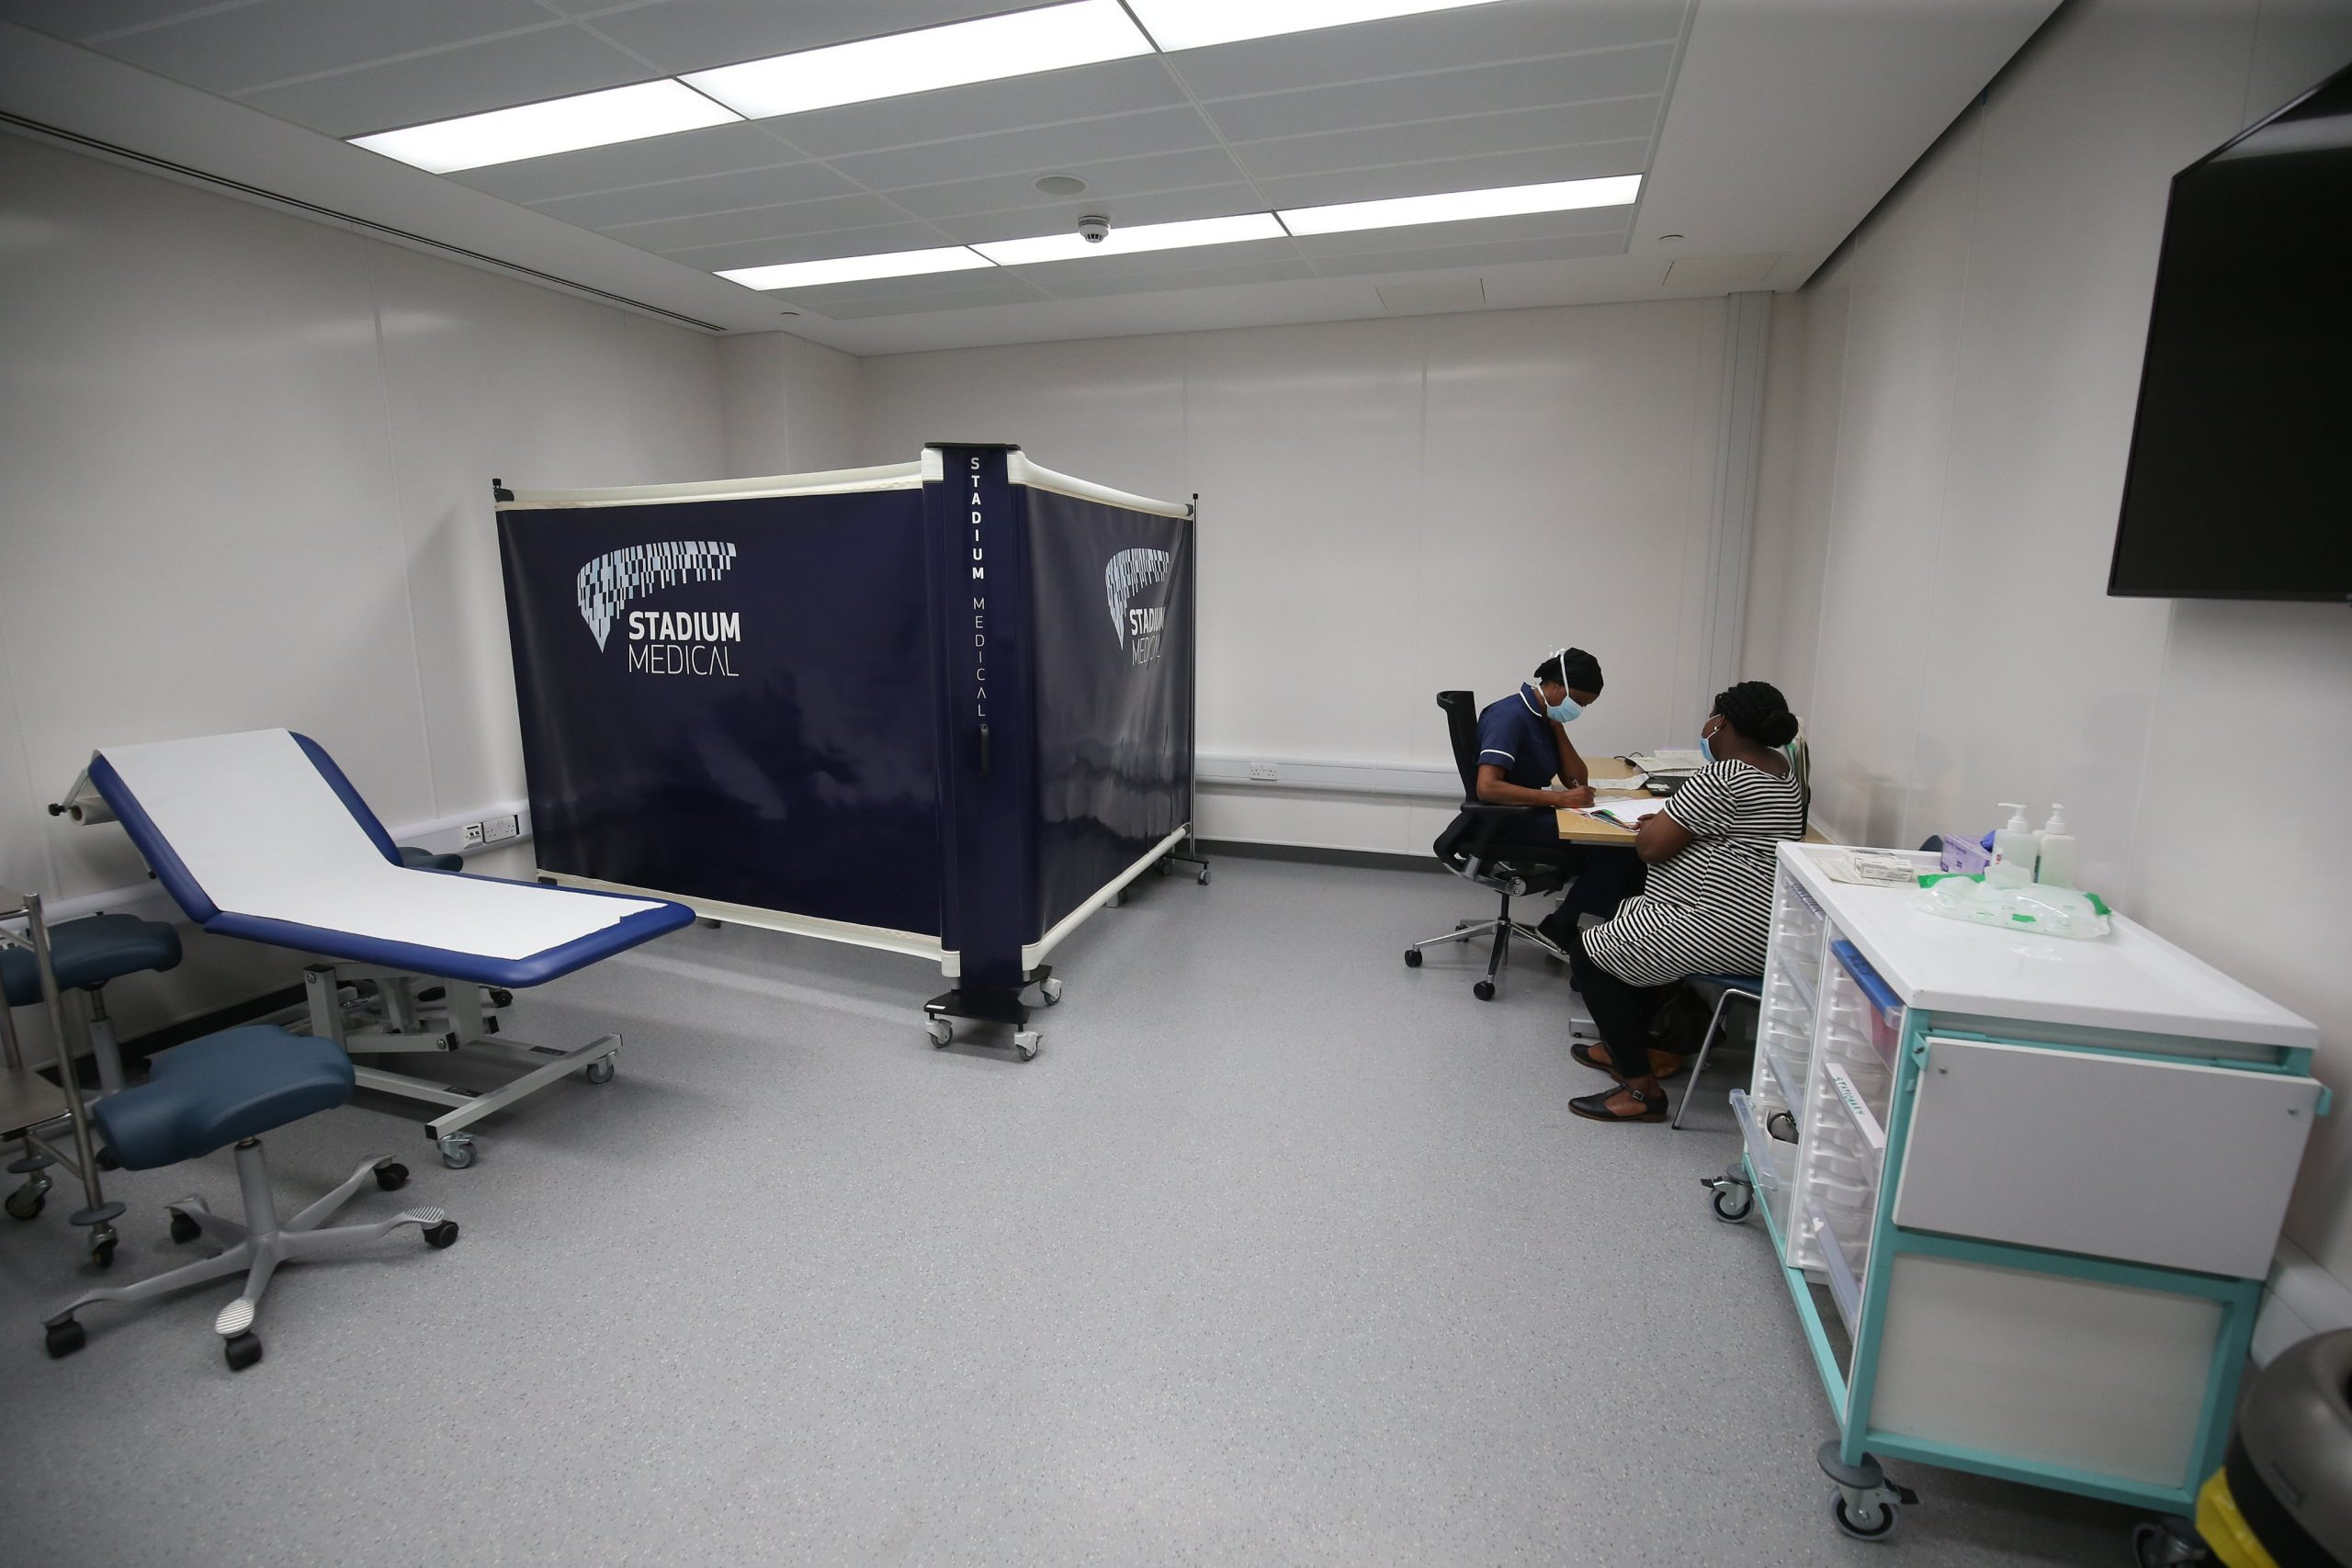 The Tottenham Hotspur Stadium is the first such venue to be used for coronavirus testing